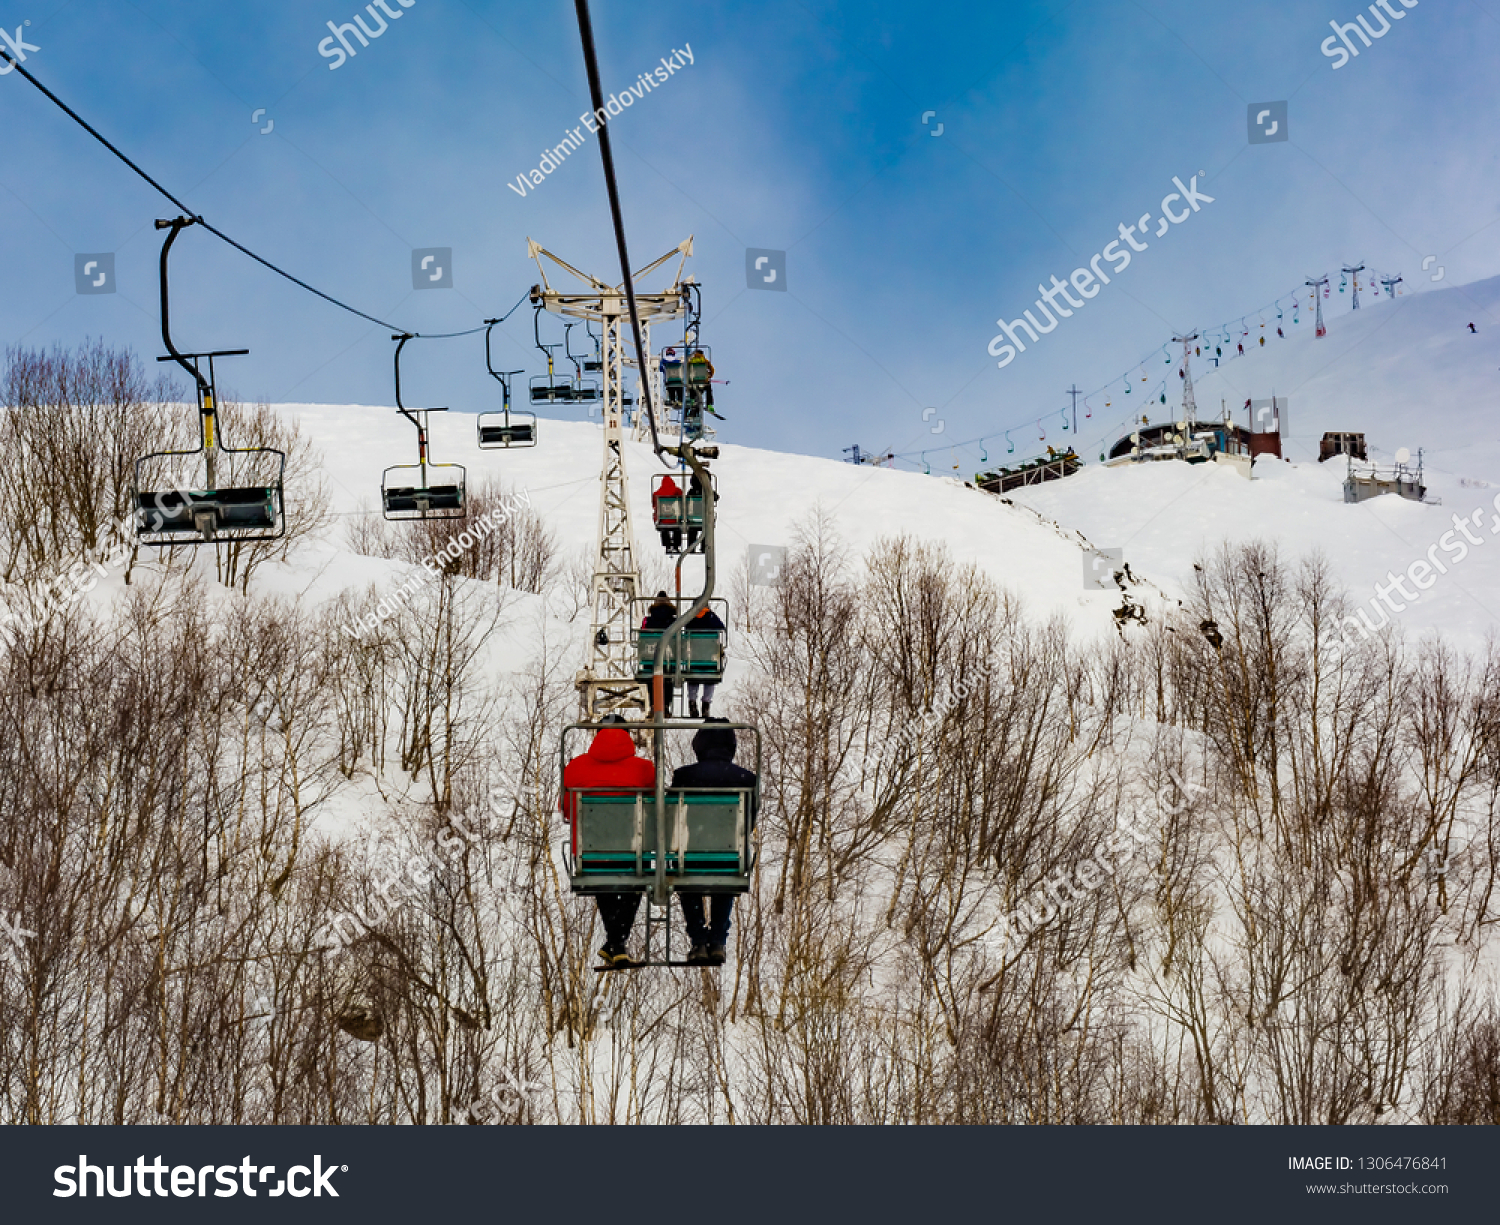 Extreme cable car ride. Winter holidays in the mountains. Snow-covered mountain slopes. Skiers and tourists. #1306476841